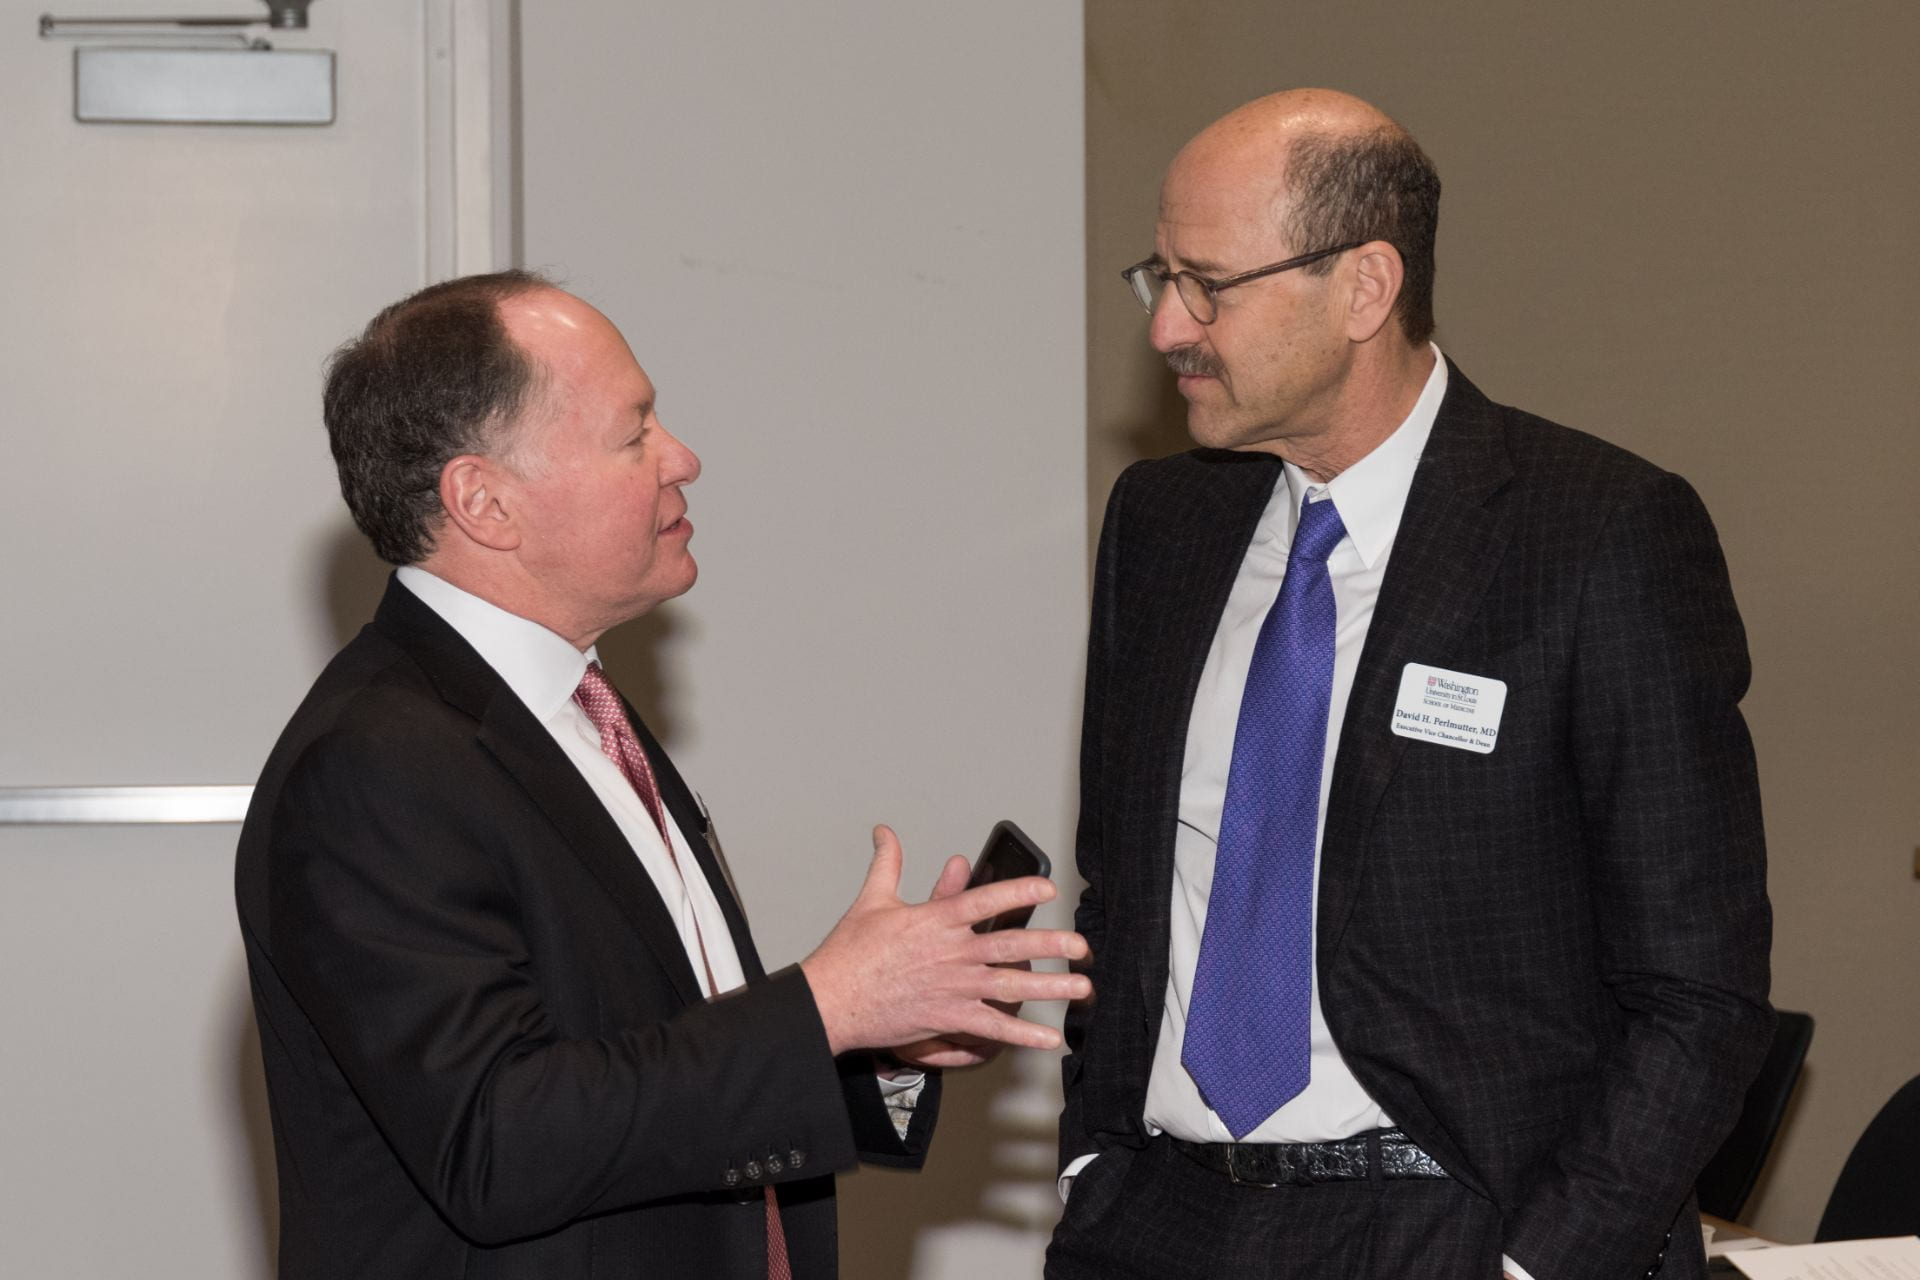 Mr. Andrew Bursky and Dean David Perlmutter confer before the symposium.